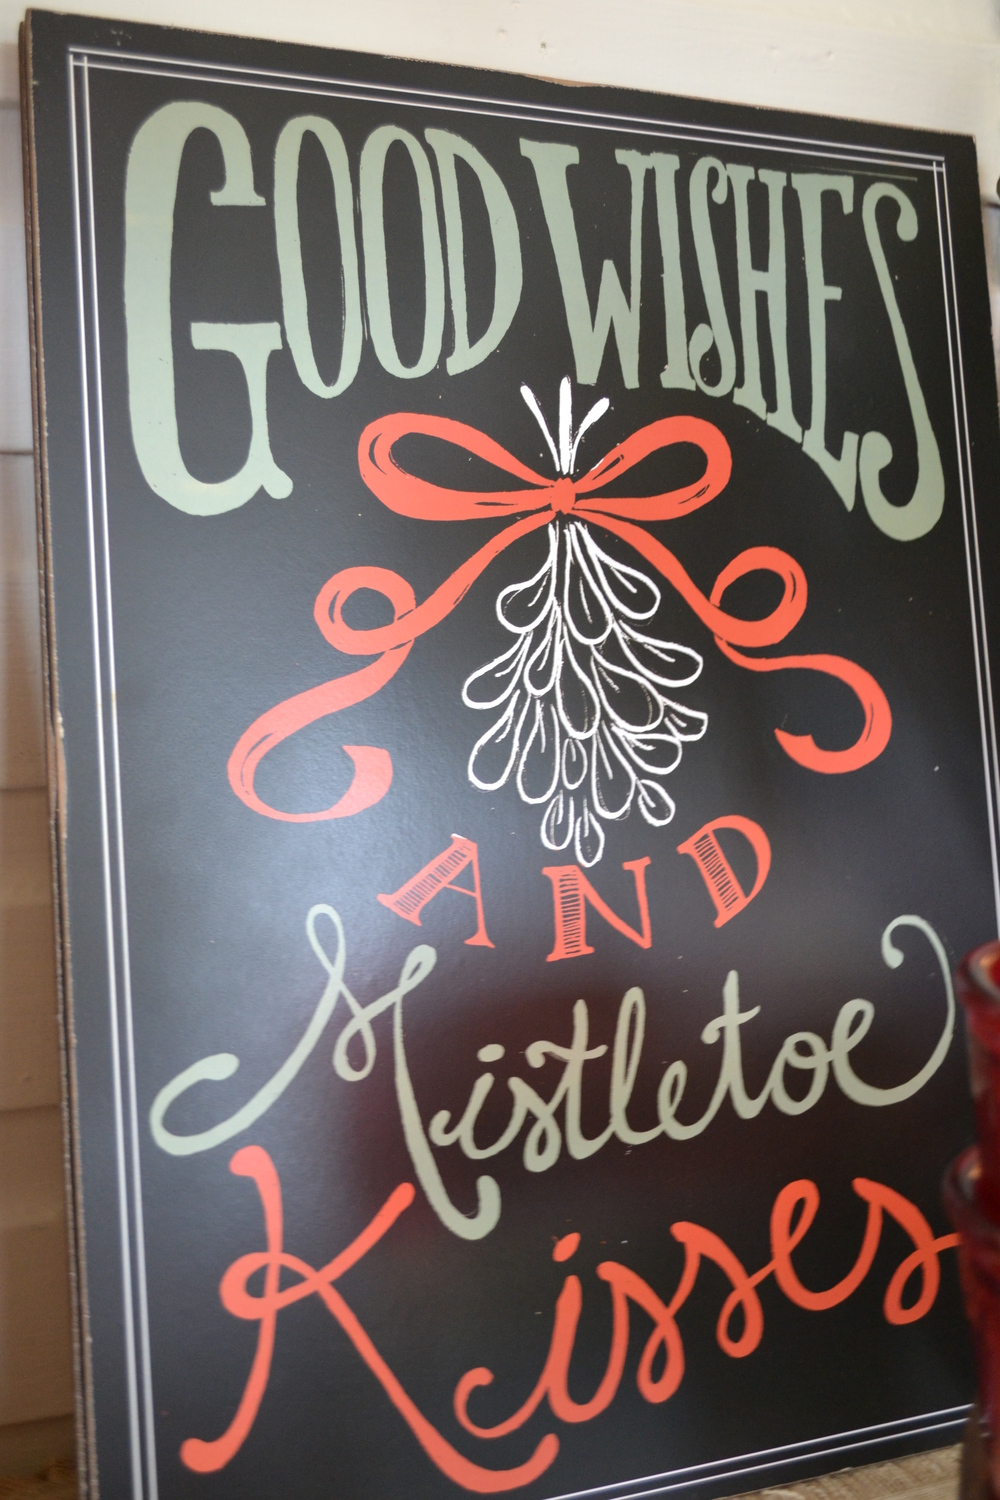 Mistletoe sign